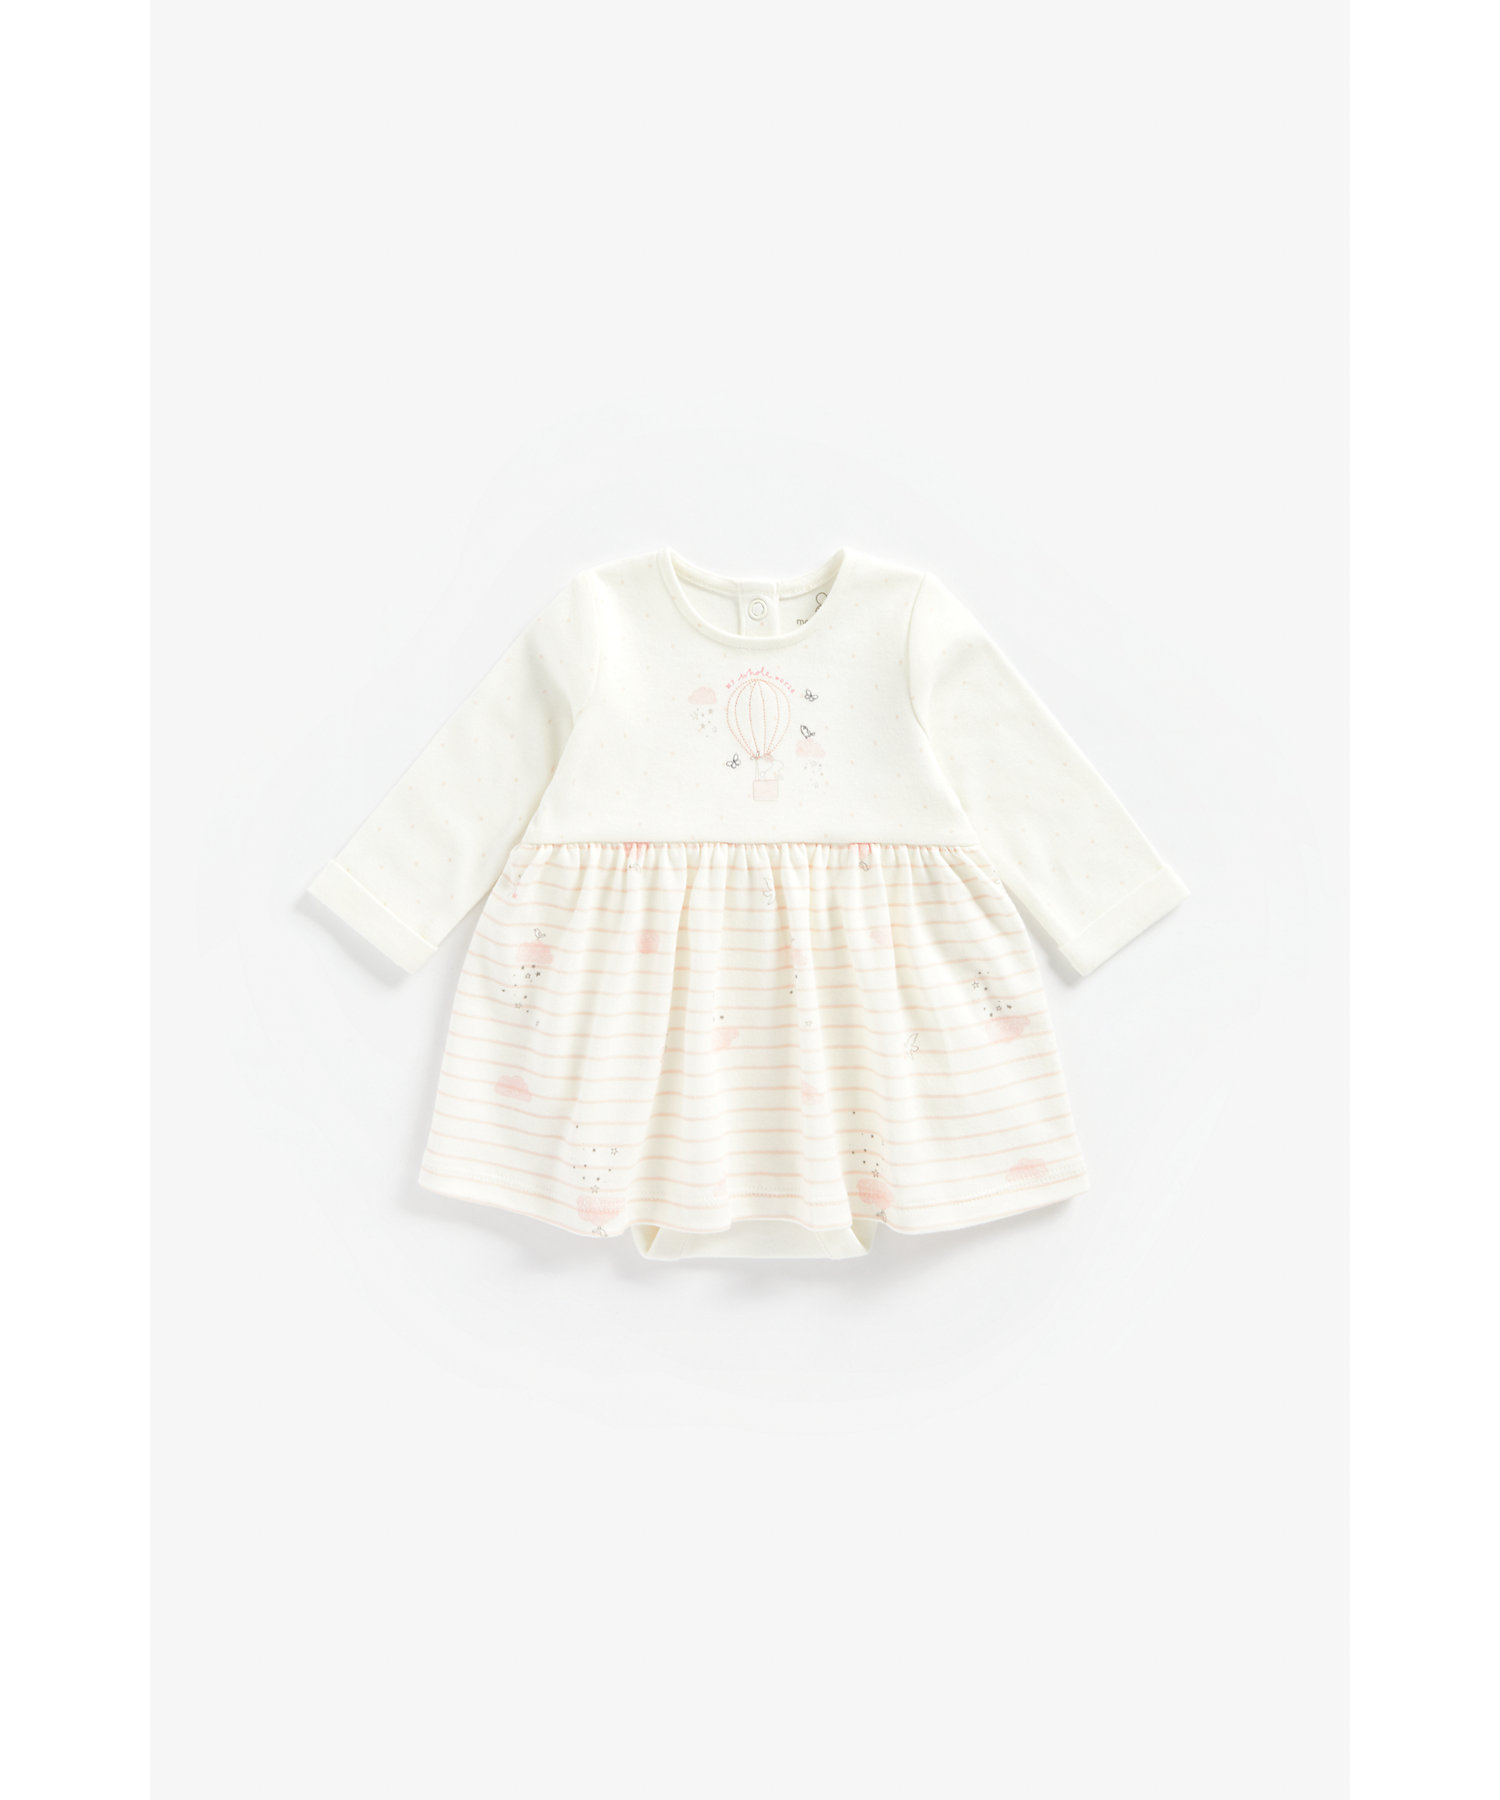 Mothercare | Girls Full Sleeves Romper Dress Hot Air Balloon Embroidery - White